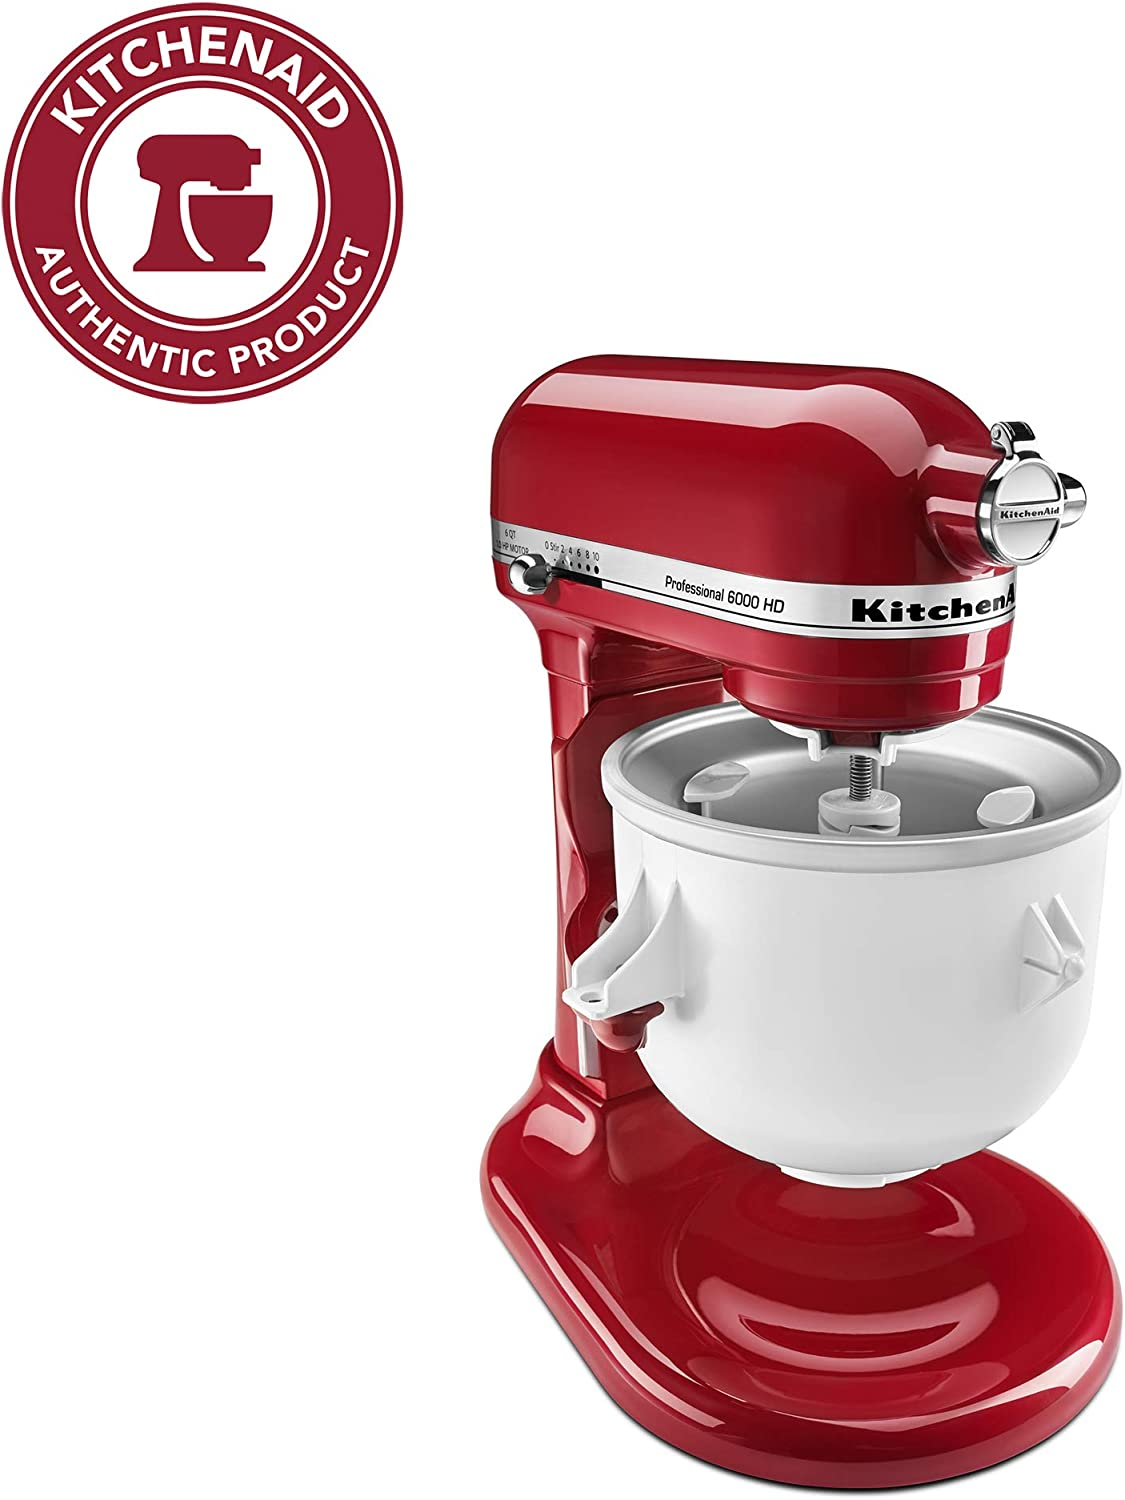 KitchenAid kaica Ice Cream Maker fijación: Amazon.es: Hogar